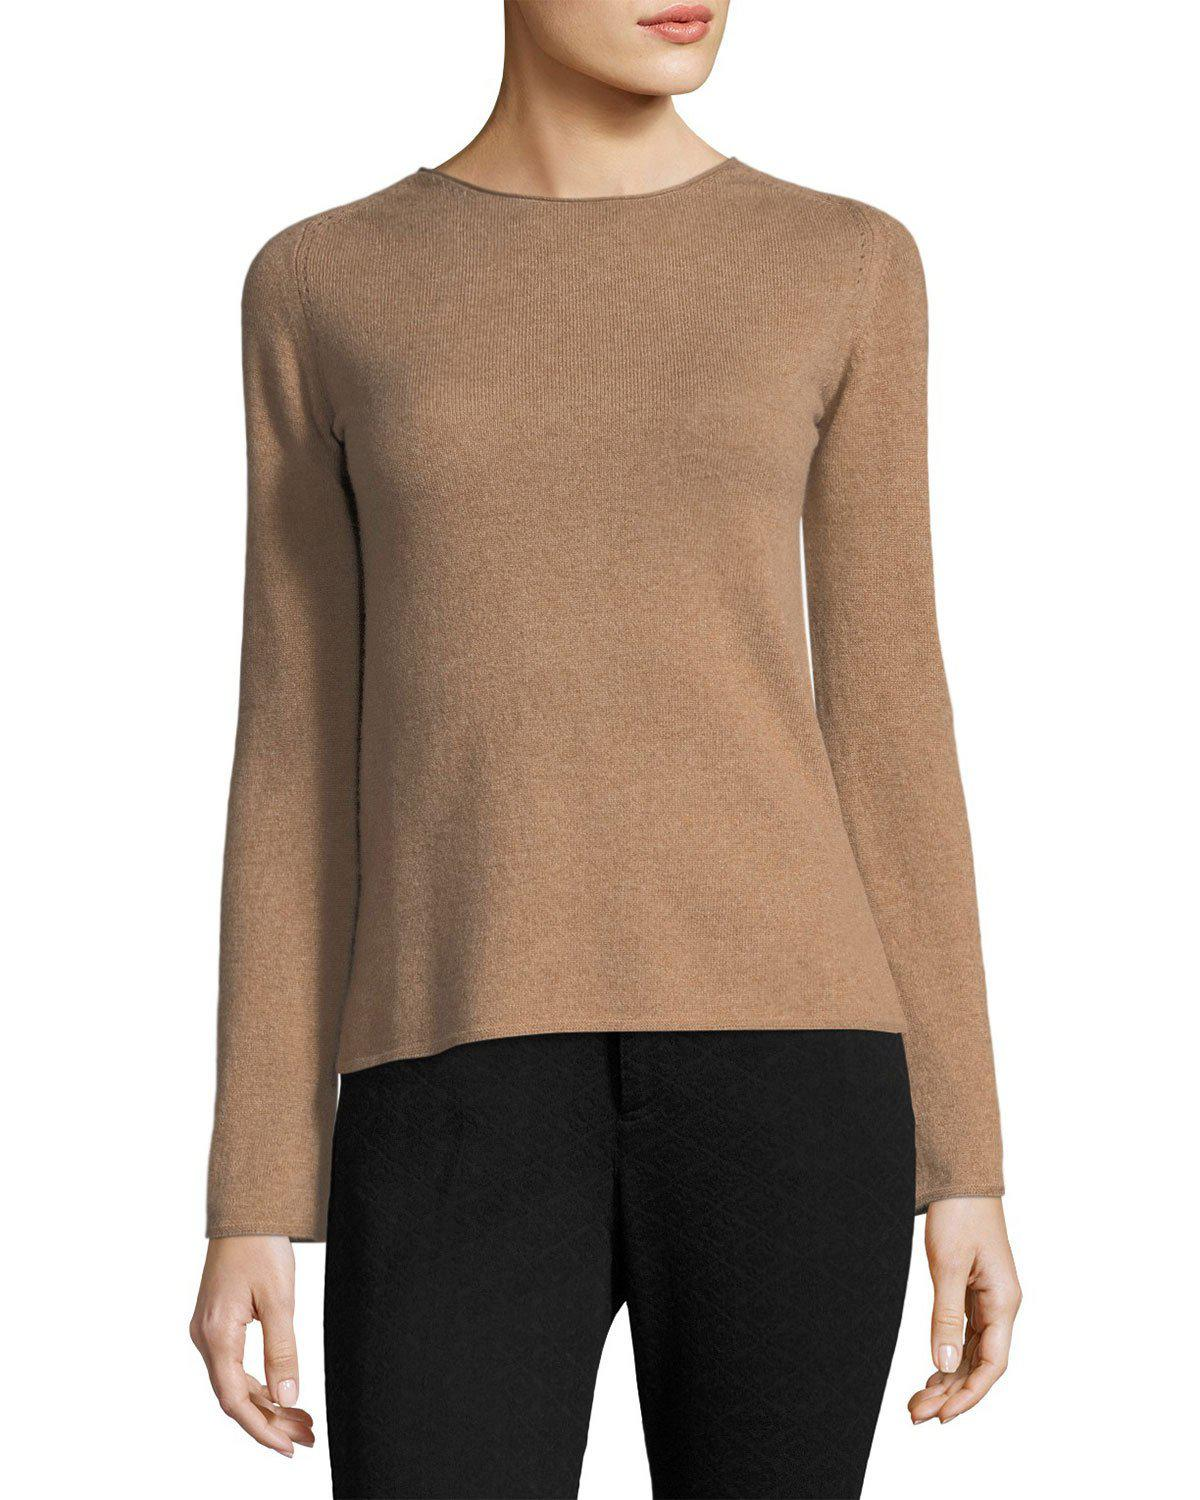 Neiman marcus Cashmere Basic Pullover Sweater | Lyst